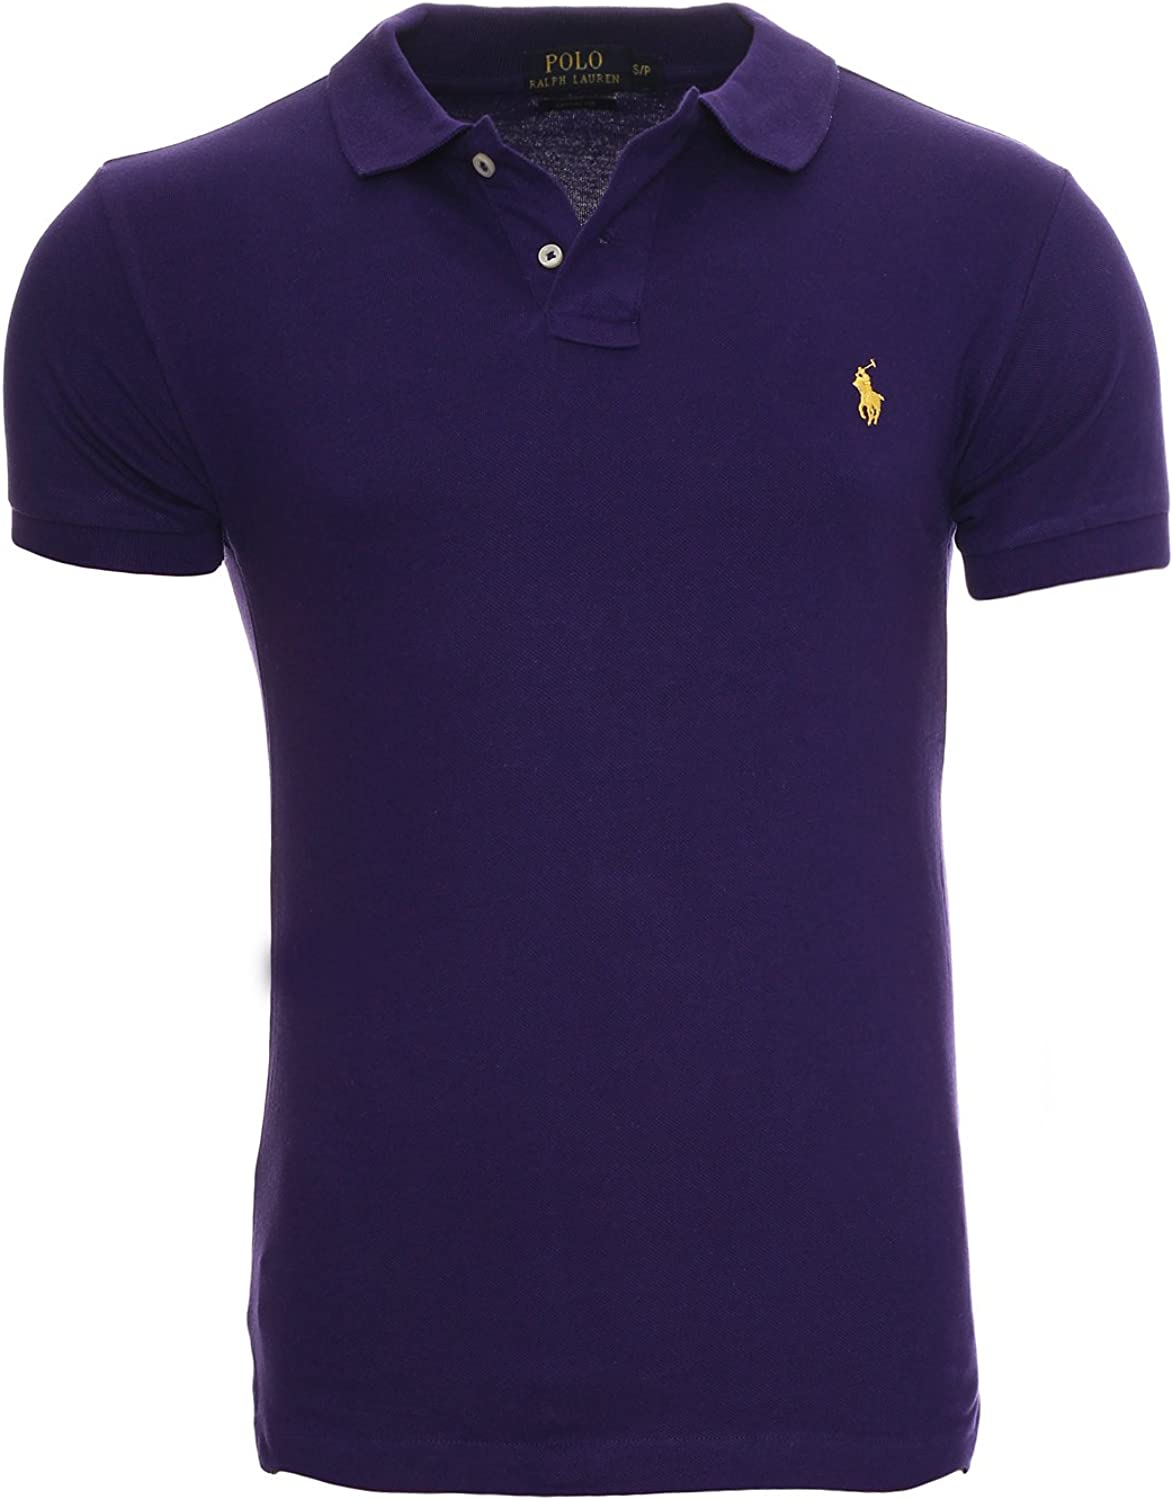 Ralph Lauren Polo Small Pony, Custom Fit: Amazon.es: Ropa y accesorios